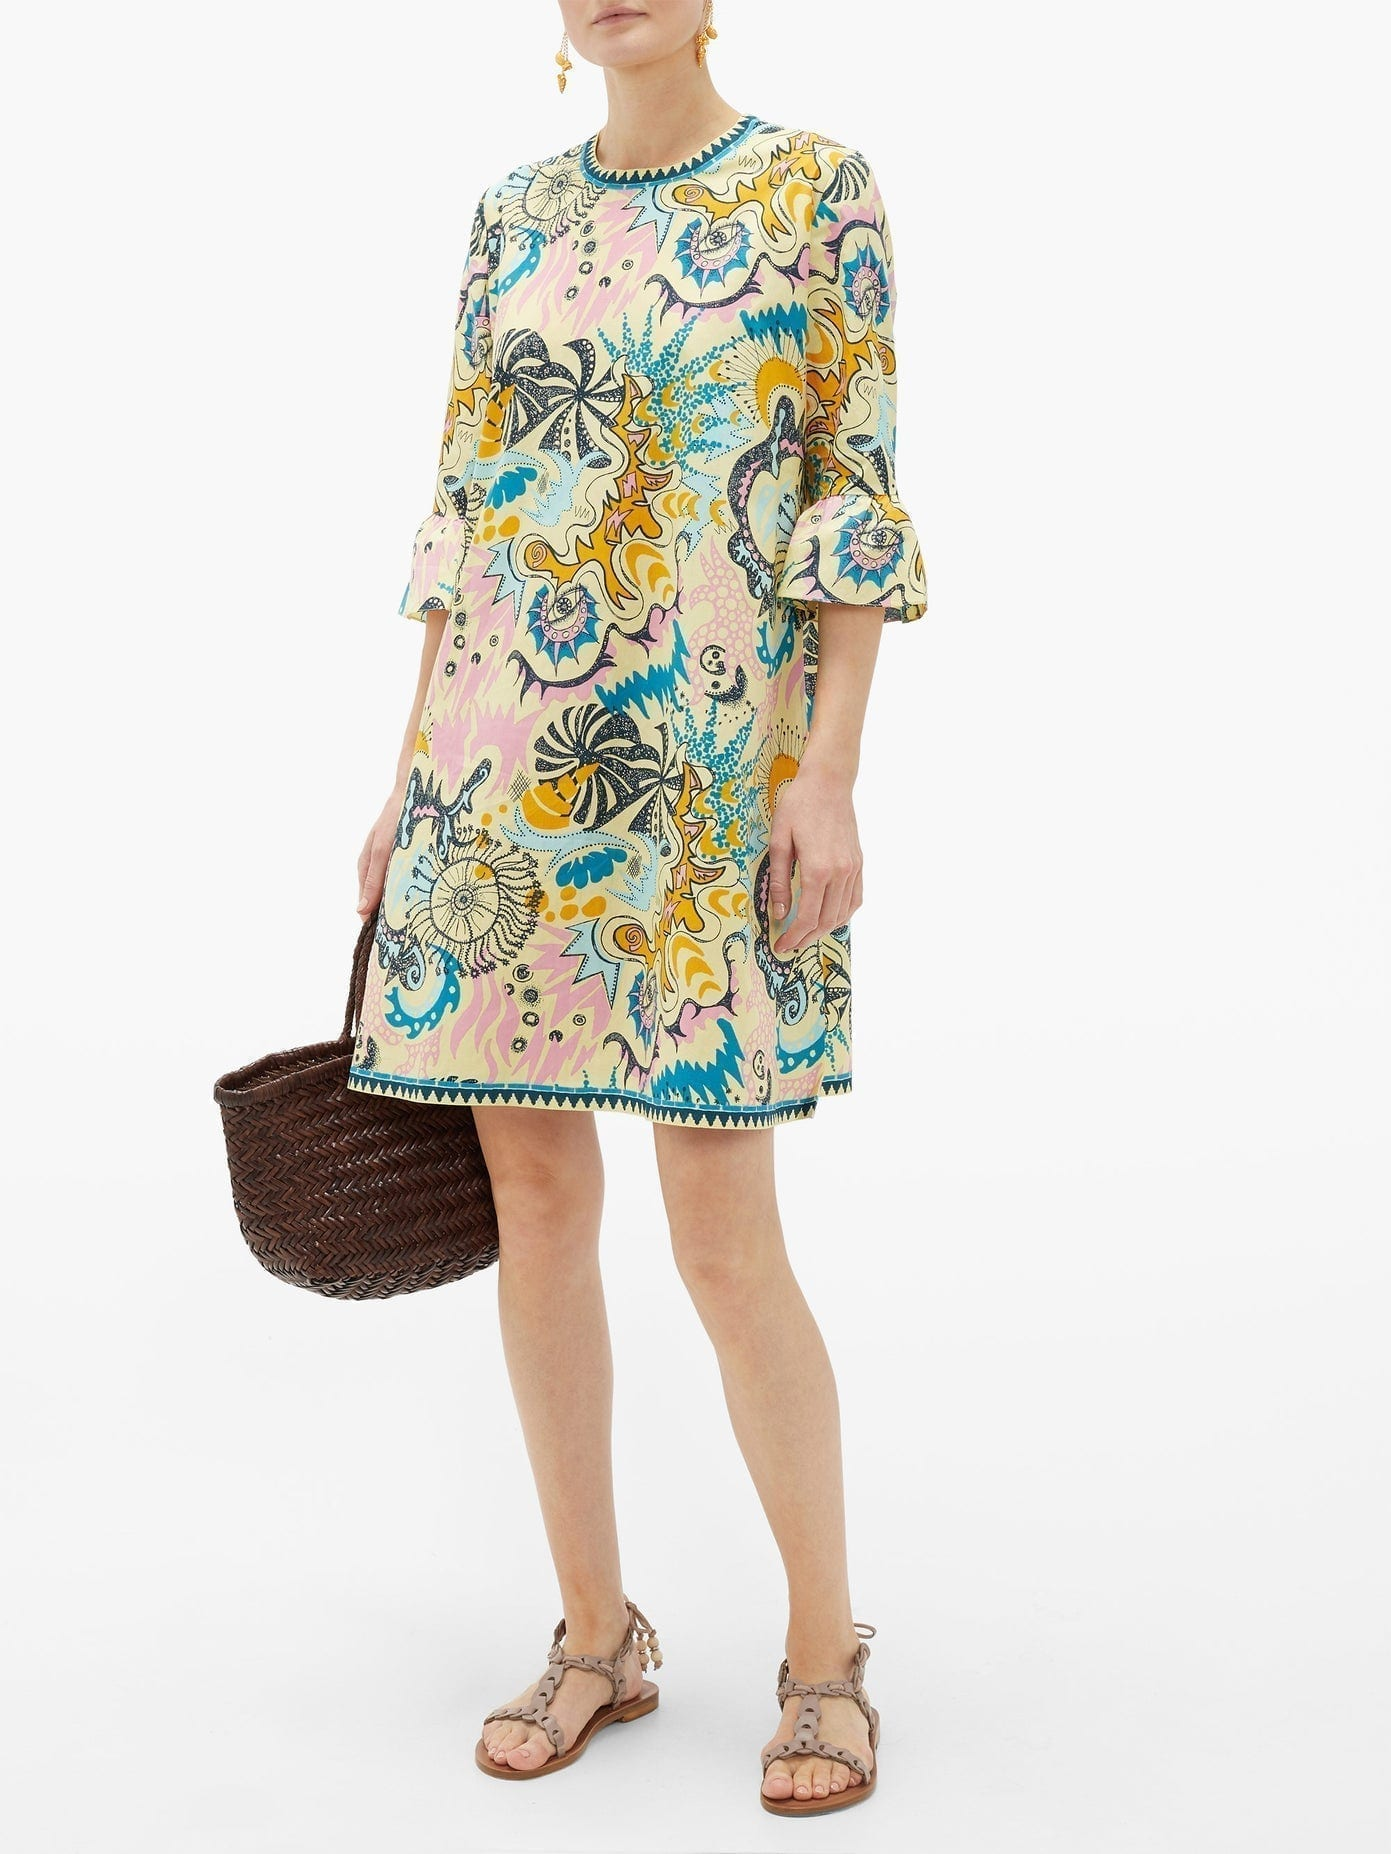 LE SIRENUSE POSITANO Psycho-print Cotton Mini Dress